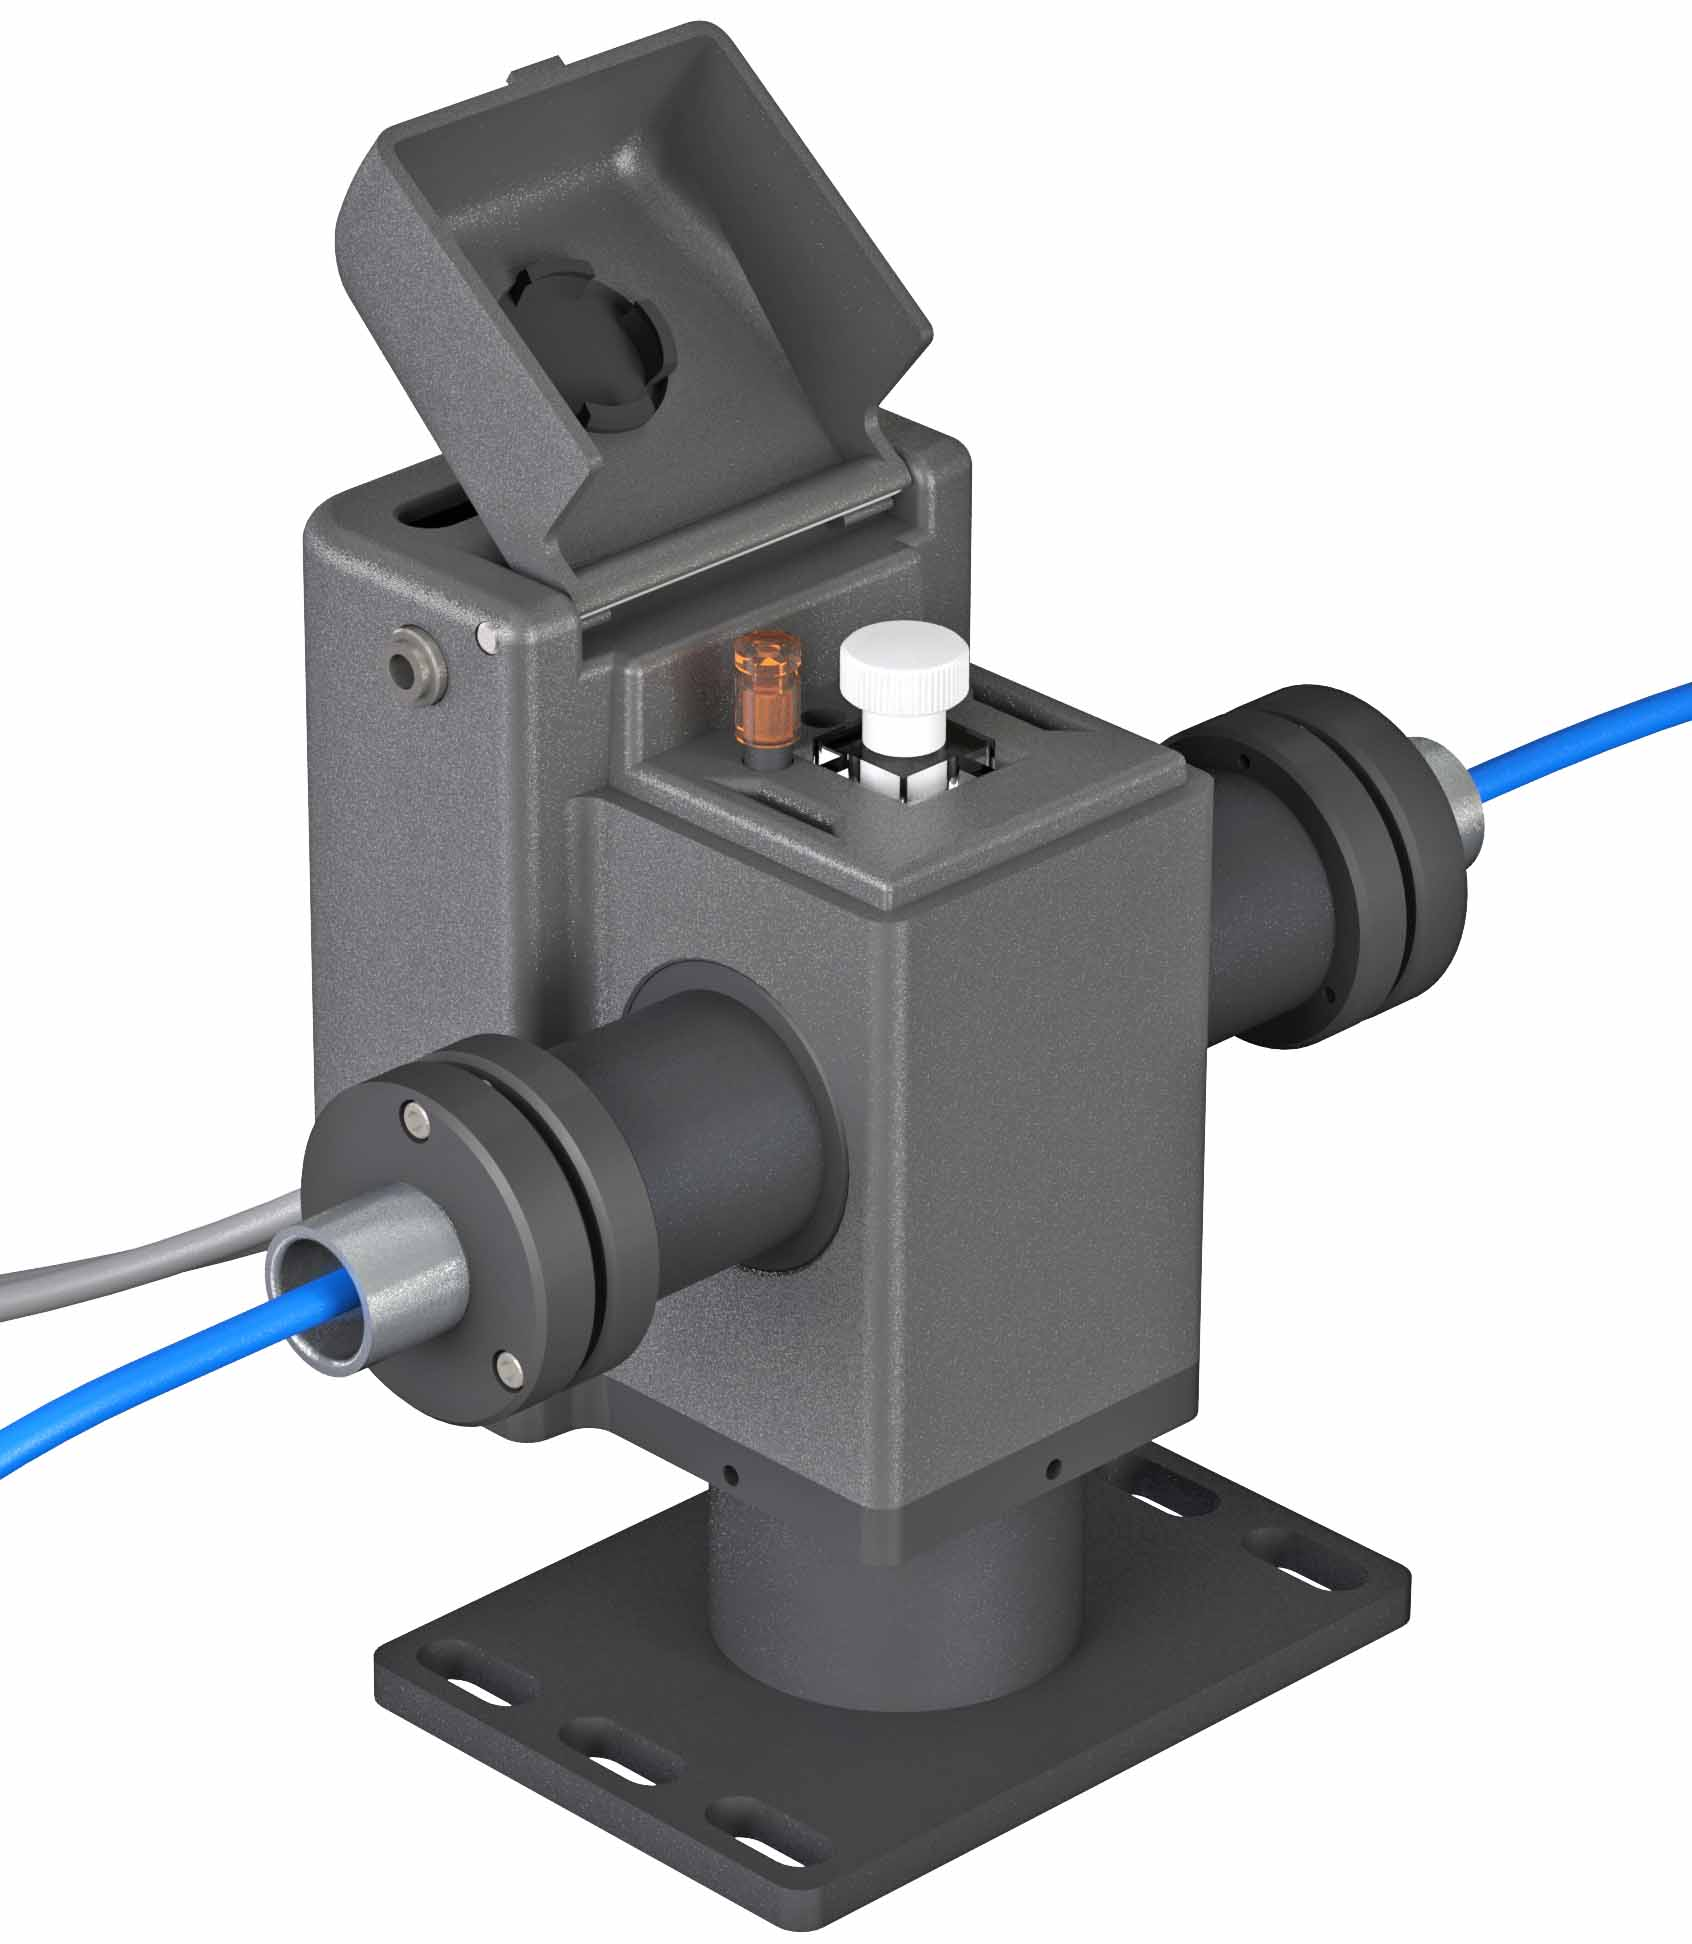 <strong>qX2 - Temperature-controlled cuvette holder adapted for fiber optics</strong>